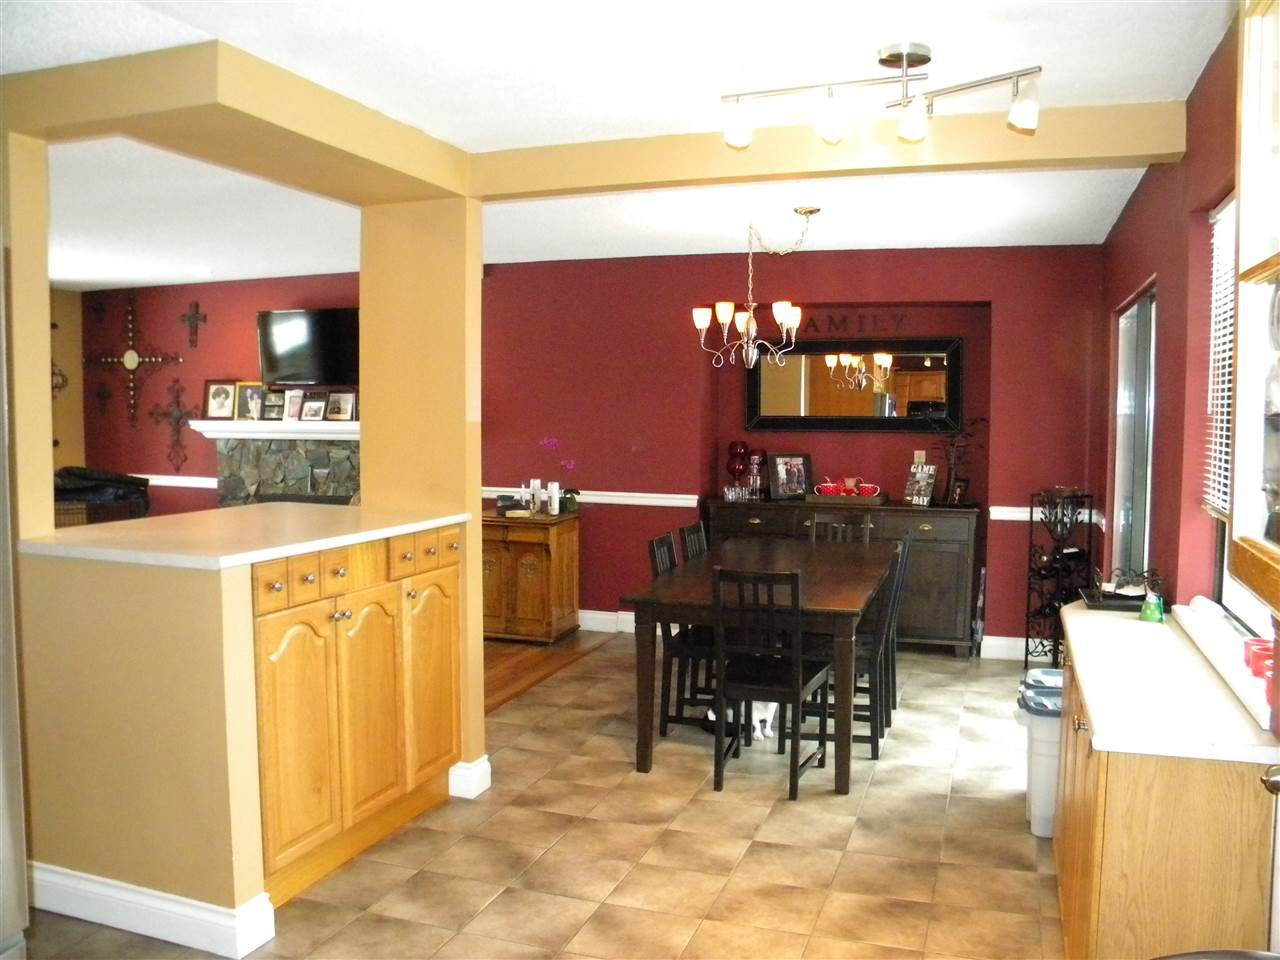 Photo 4: Photos: 15736 95A Avenue in Surrey: Fleetwood Tynehead House for sale : MLS®# R2132651